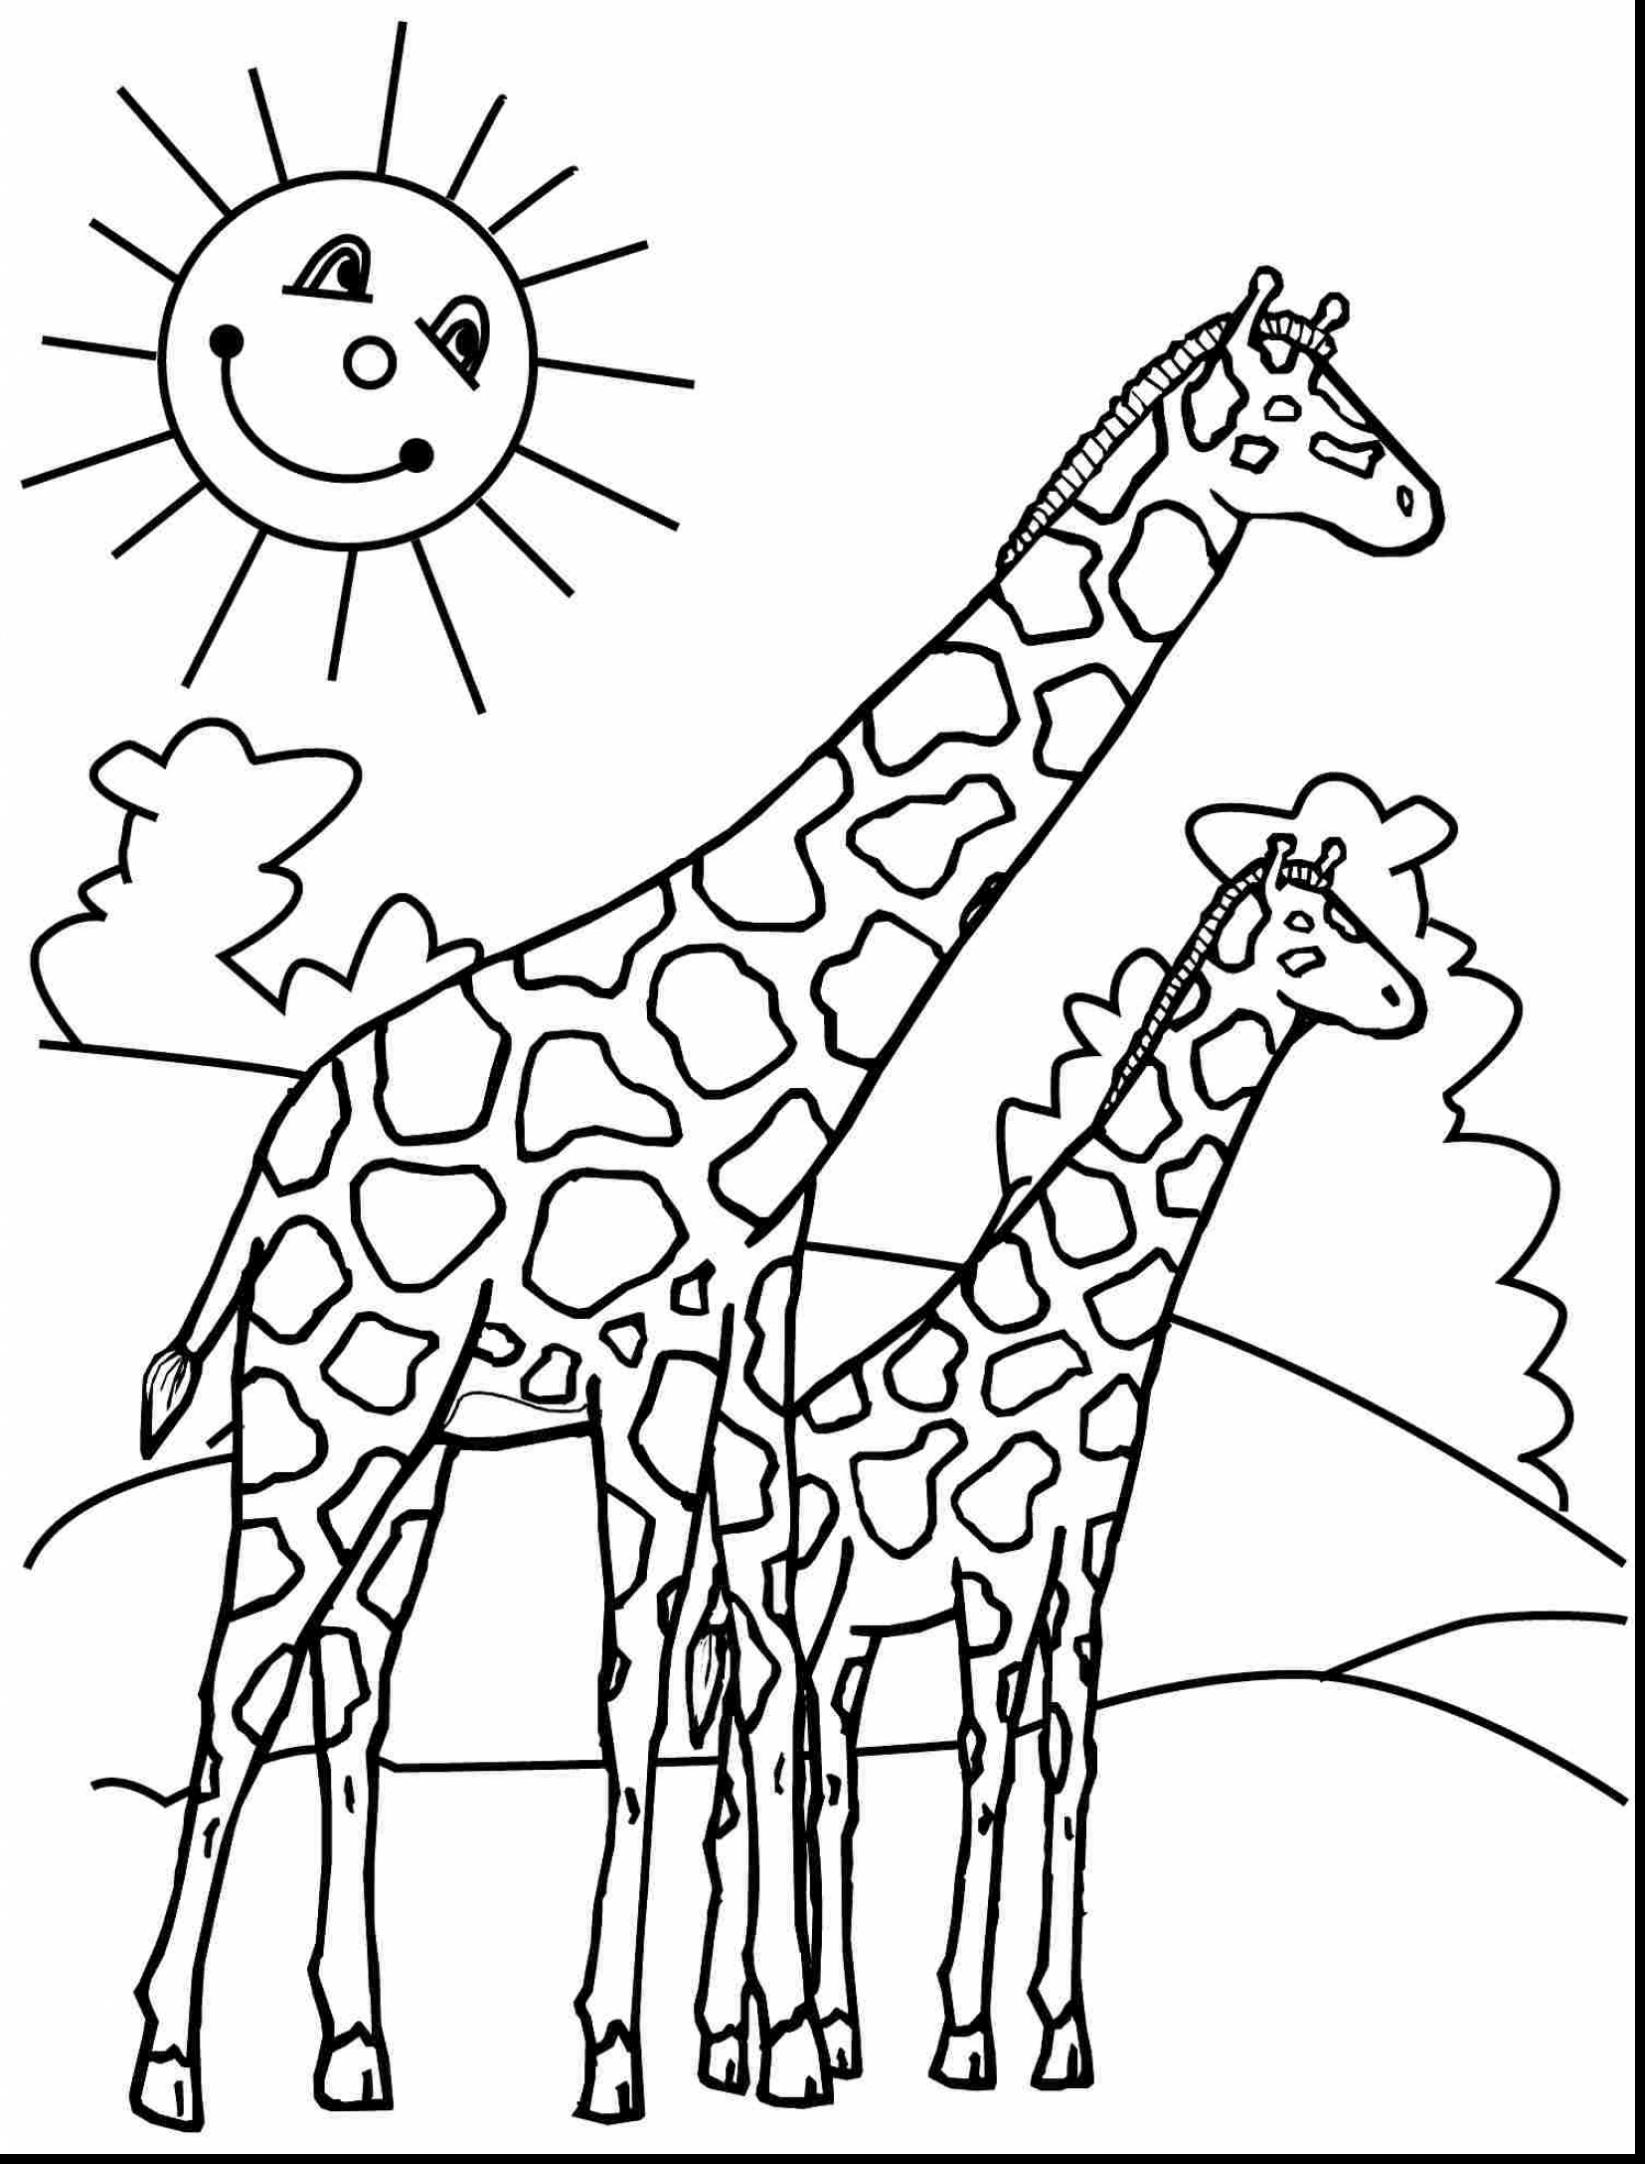 1645x2164 Happy Pictures Of Giraffes To Color 3